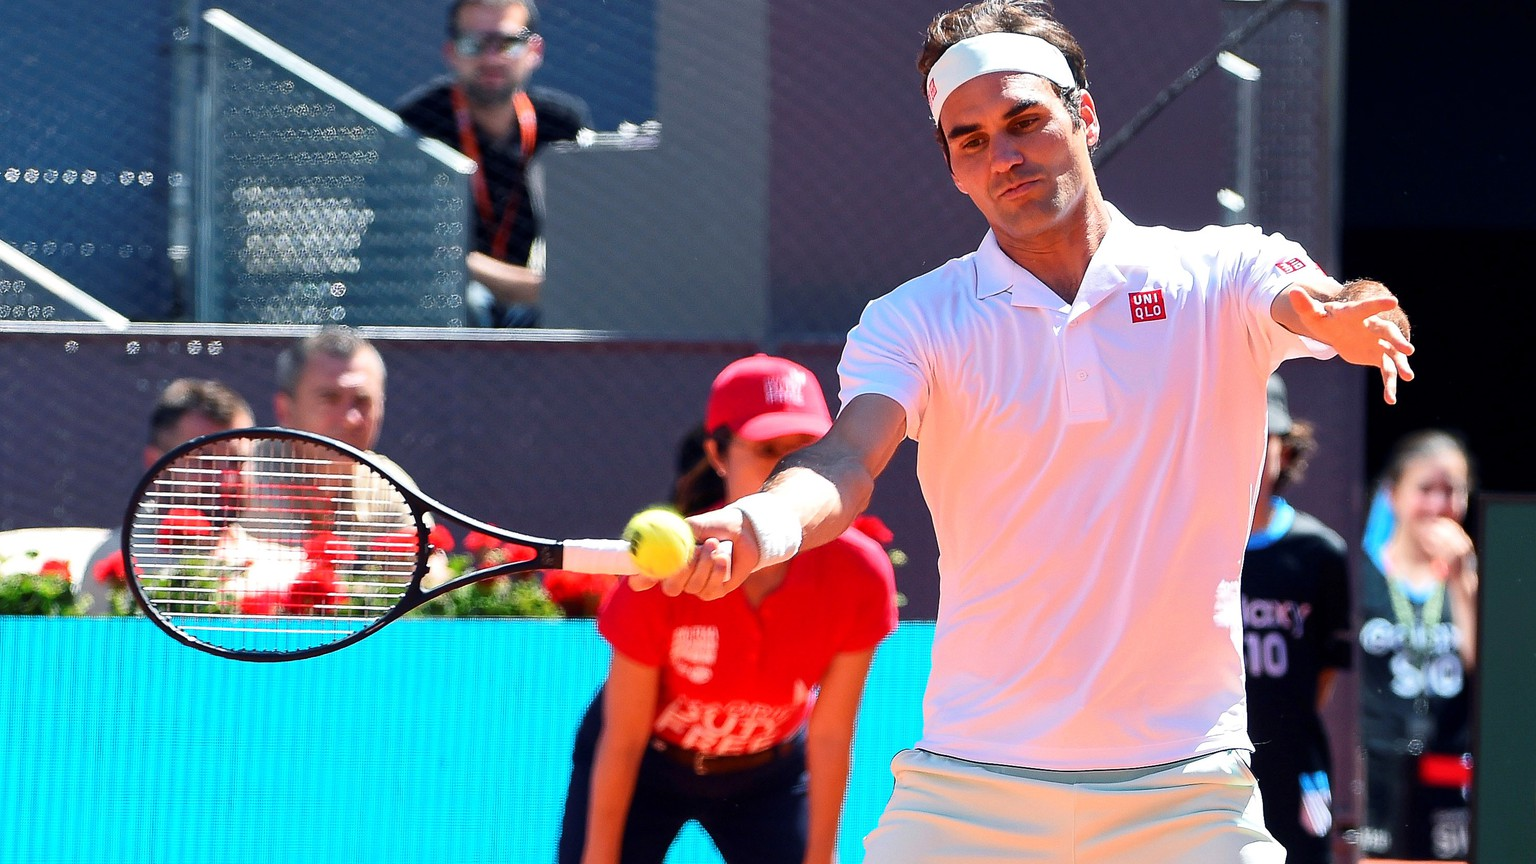 epa07558405 Roger Federer of Switzerland in action against Gael Monfils of France during their third round match of the Mutua Madrid Open tennis tournament at the Caja Magica complex in Madrid, Spain, 09 May 2019.  EPA/FERNANDO VILLAR